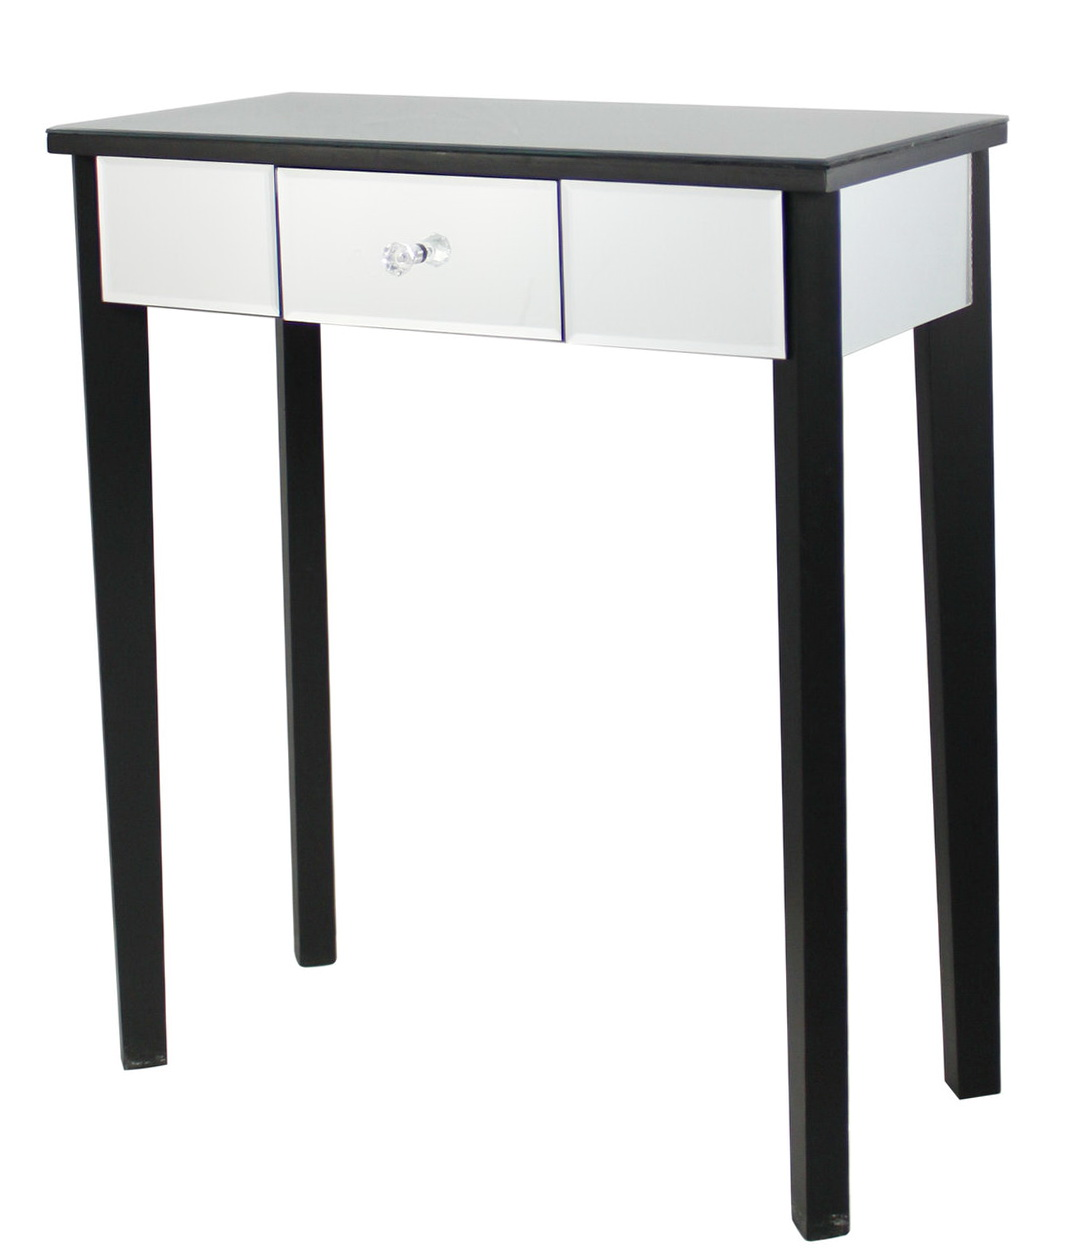 small console tables uk home design ideas. Black Bedroom Furniture Sets. Home Design Ideas